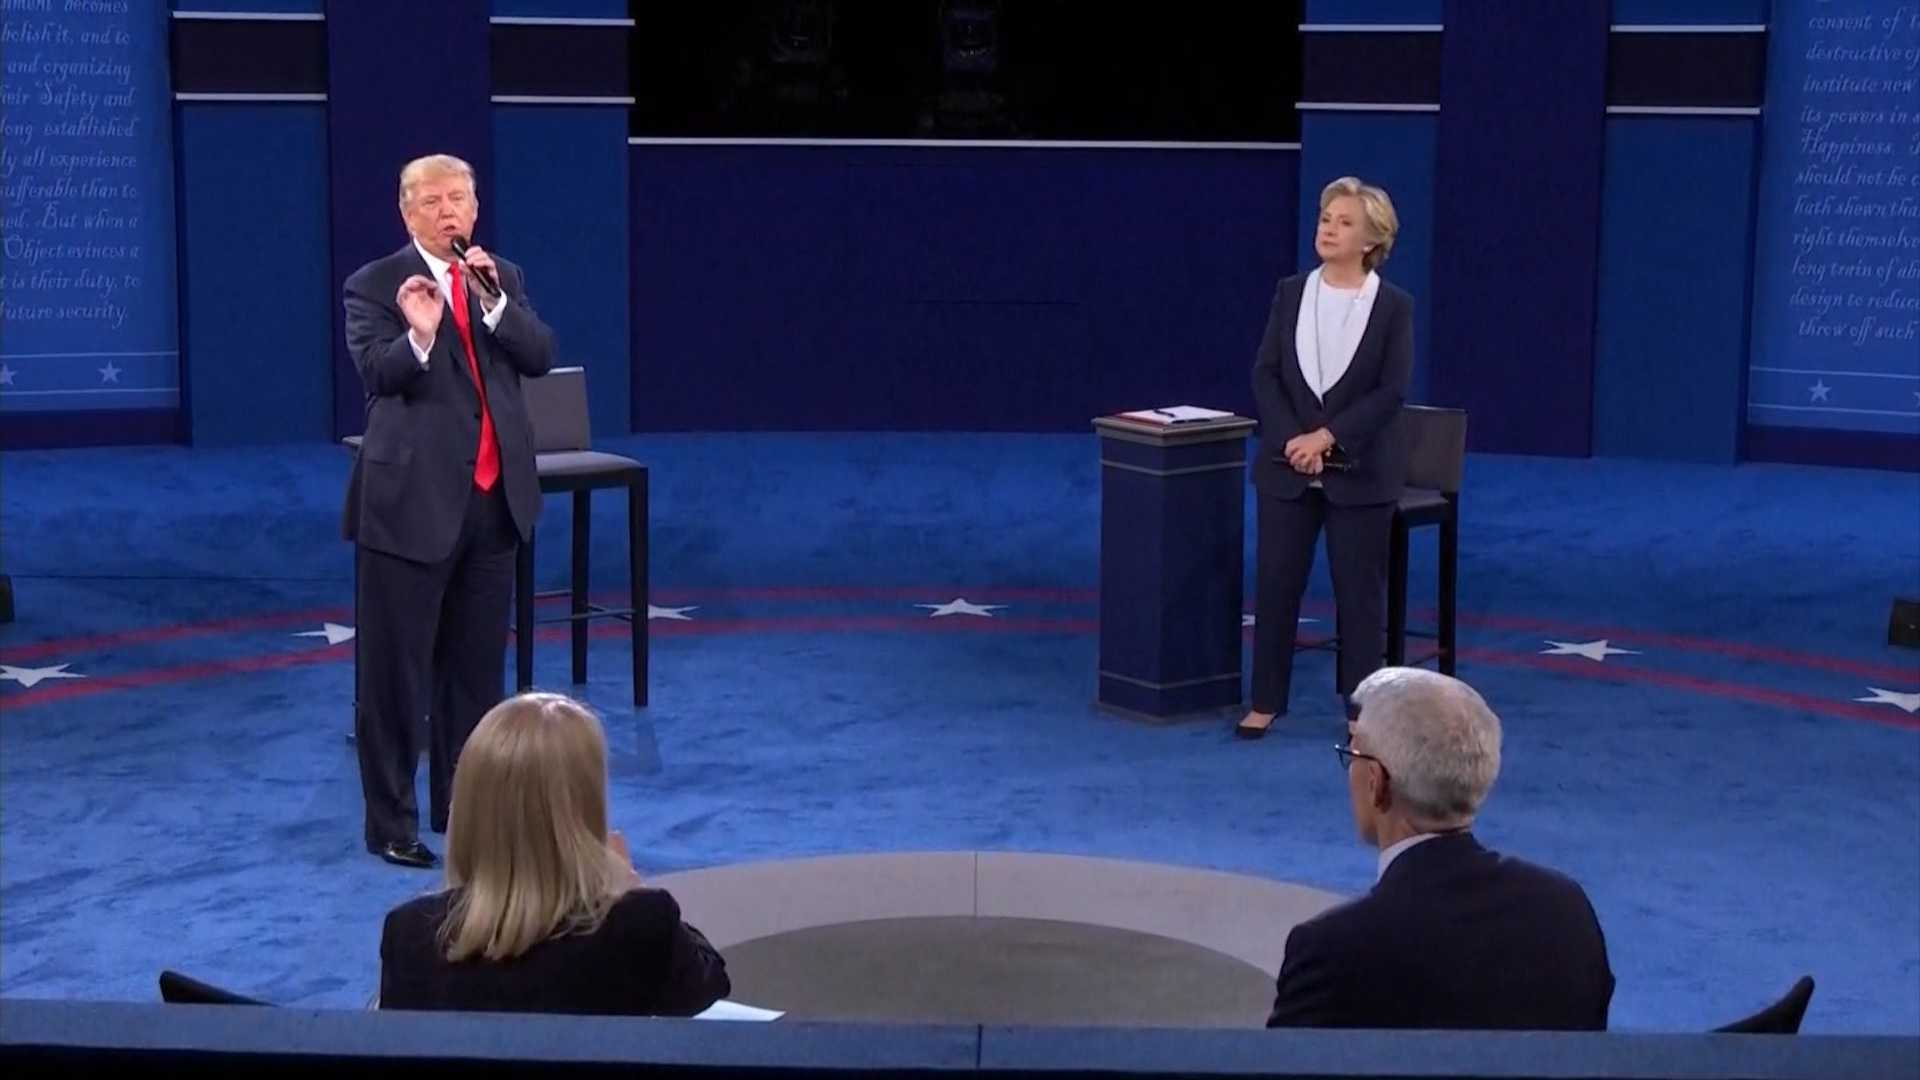 Republican presidential nominee Donald Trump and Democratic presidential nominee Hilary Clinton debate on Sunday, Oct. 9, 2016, at Washington University in St. Louis.